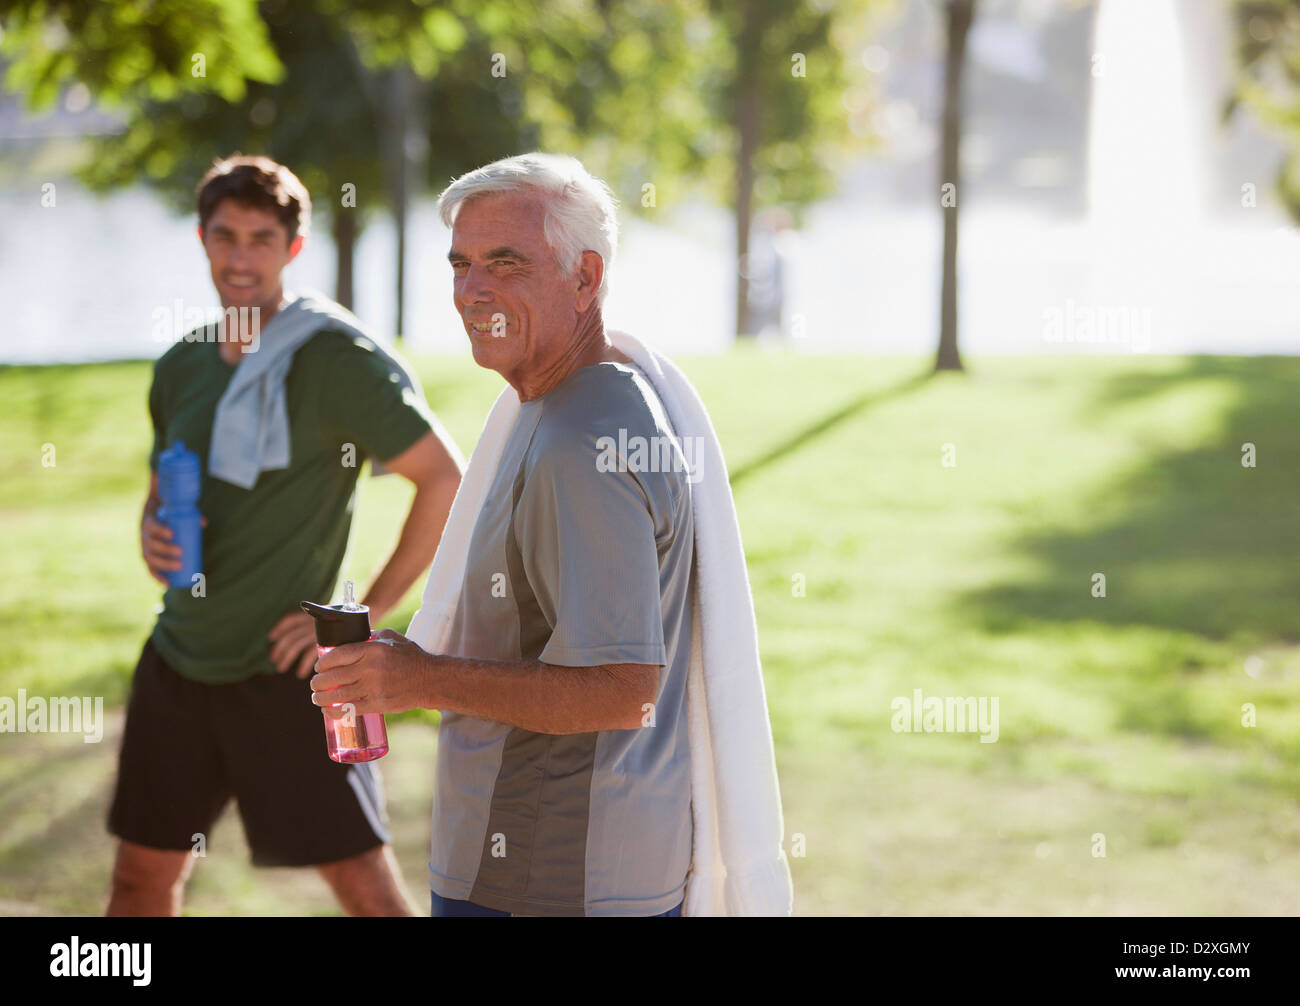 Men drinking water after workout Stock Photo